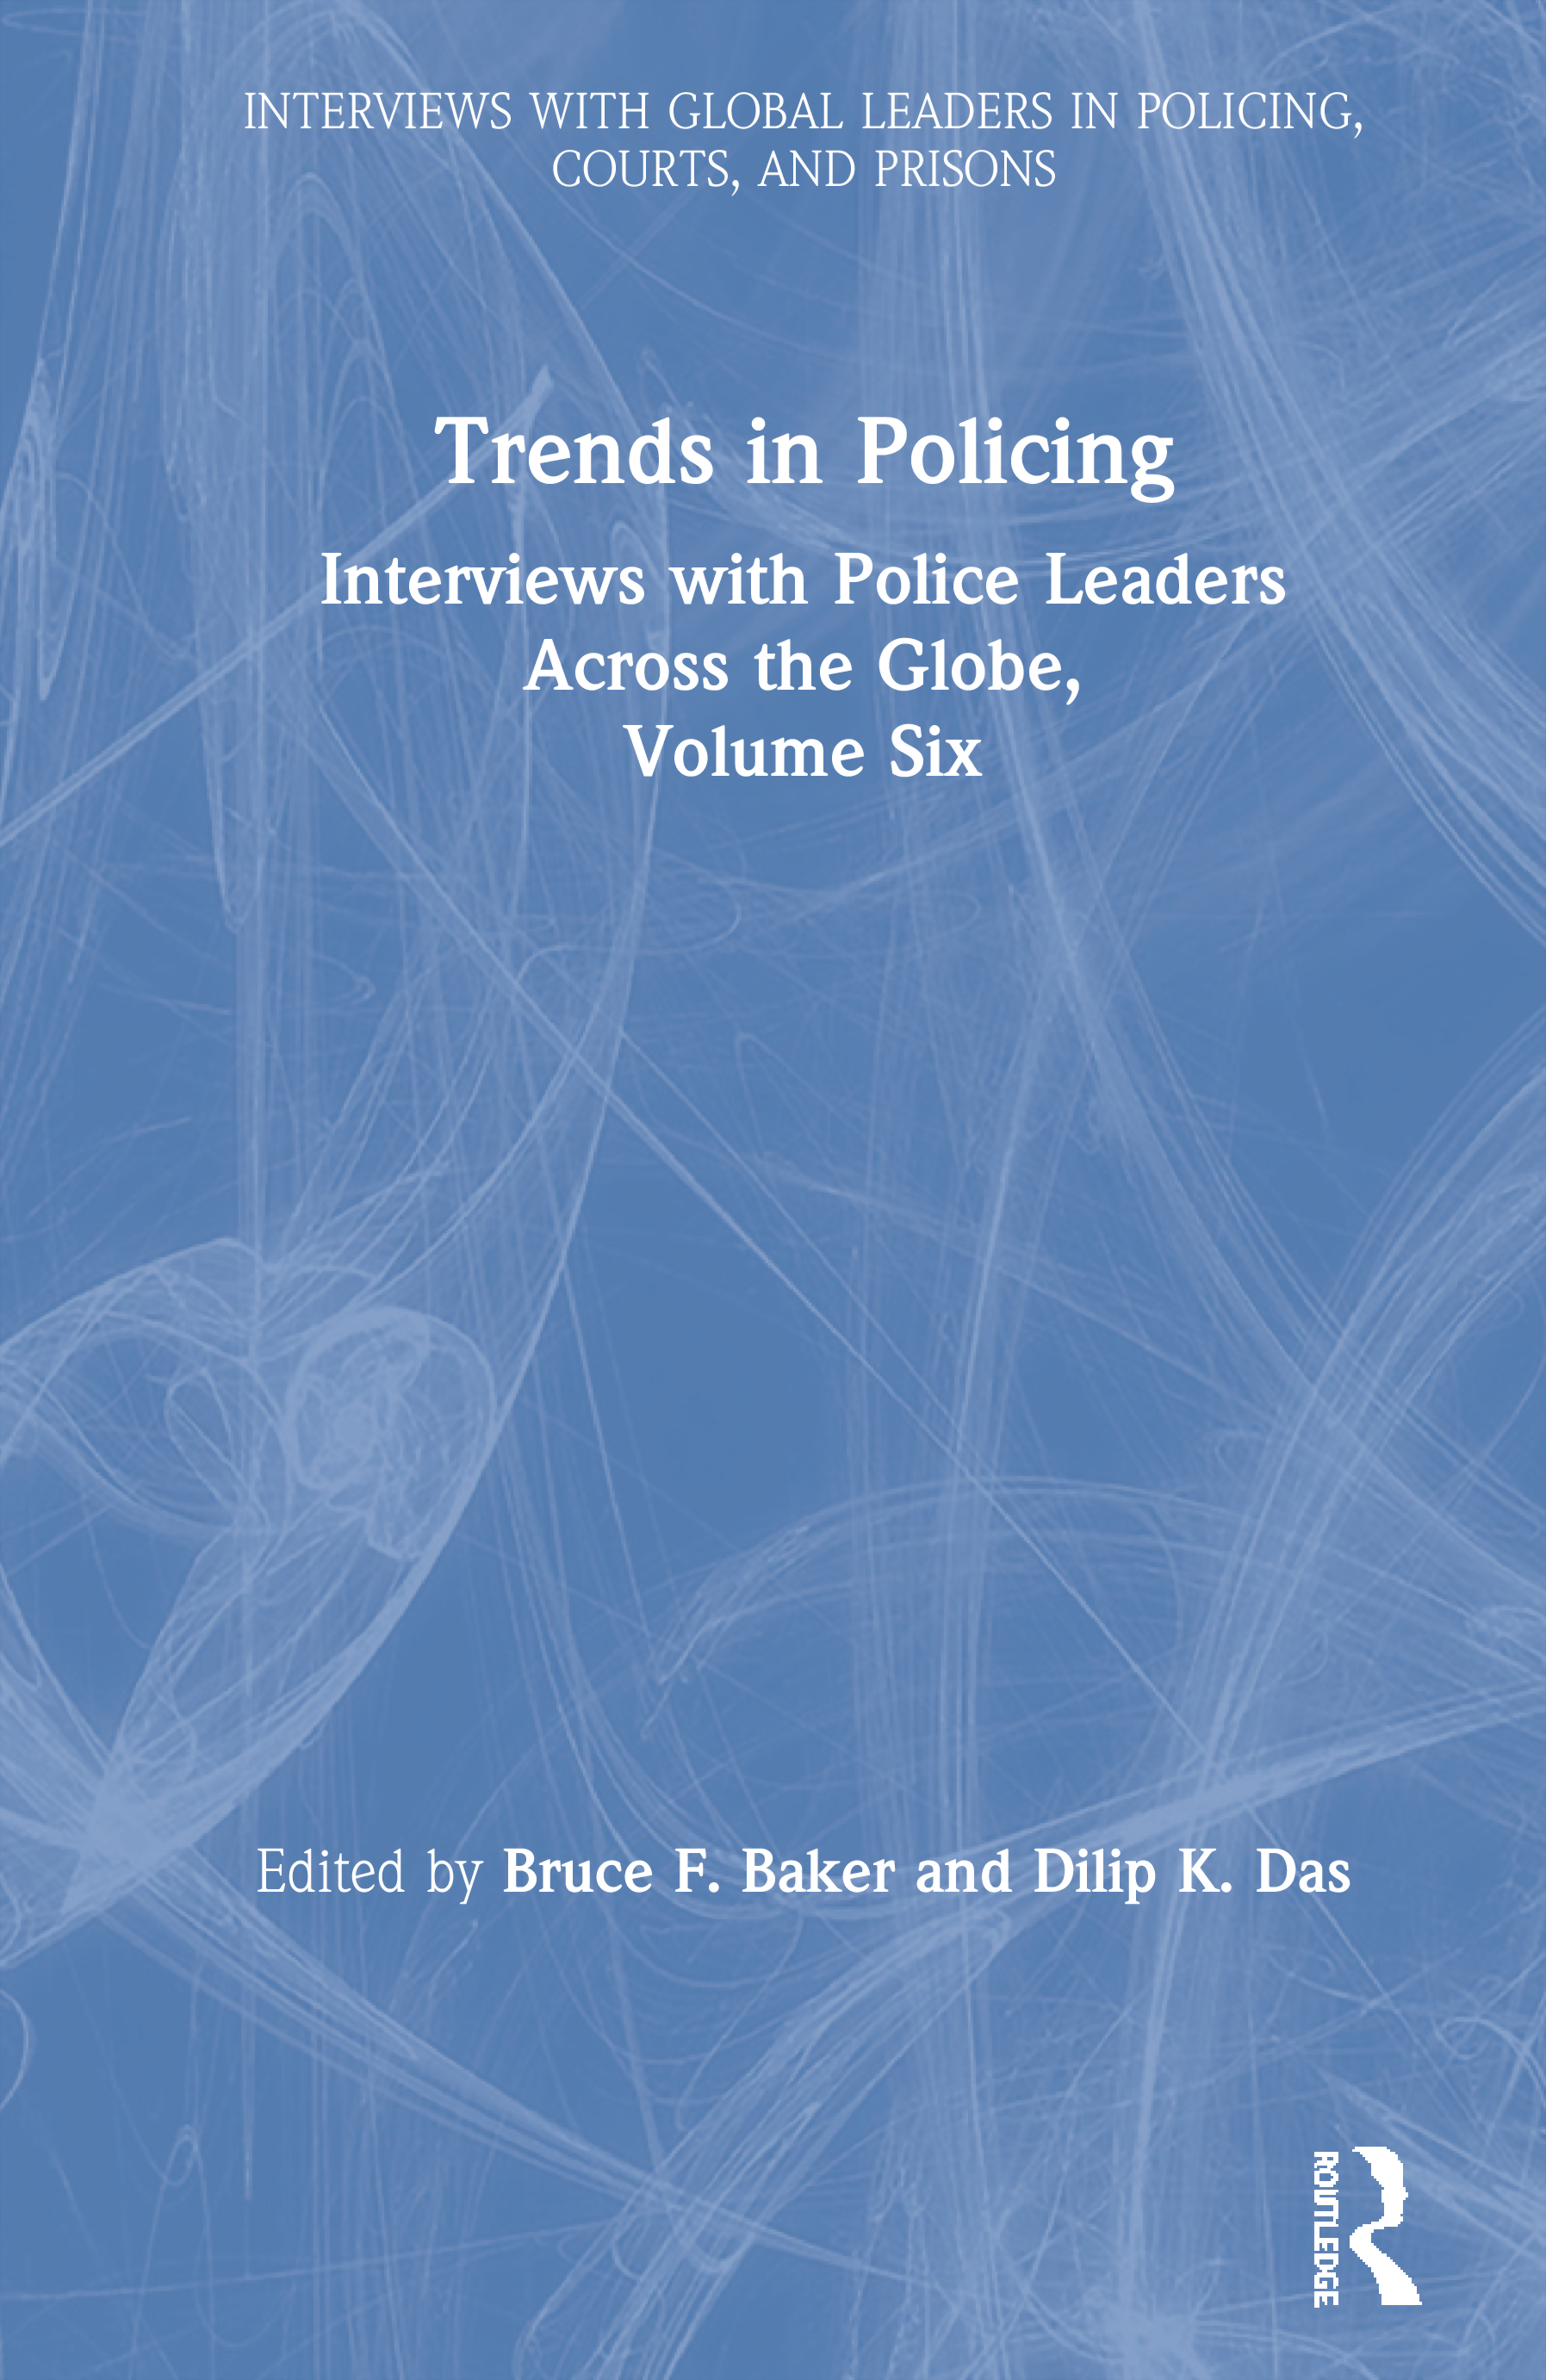 Trends in Policing: Interviews with Police Leaders Across the Globe, Volume Six book cover